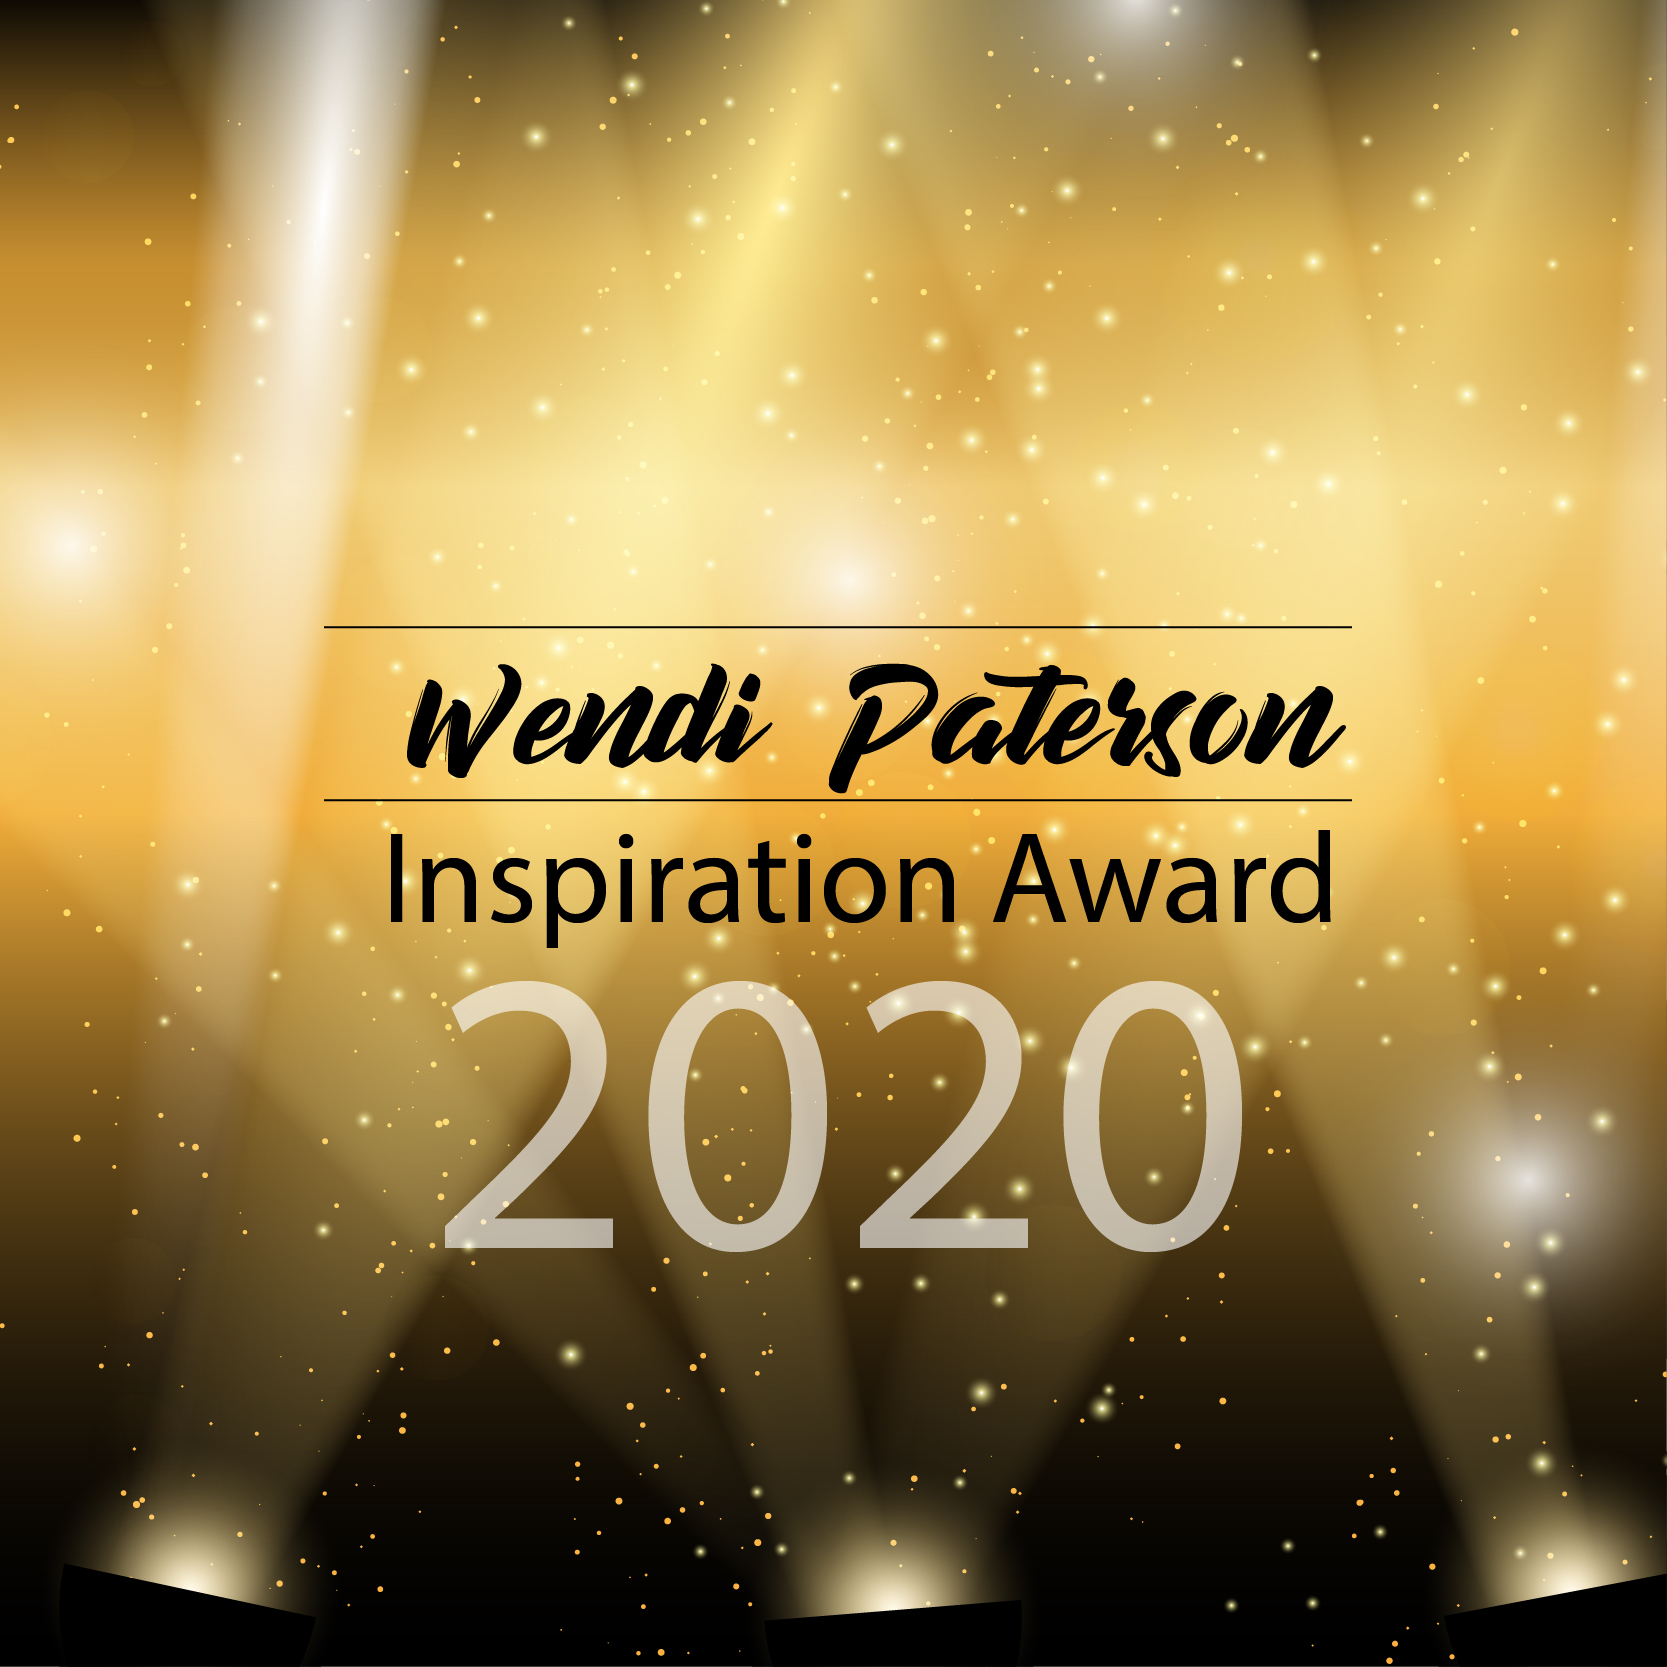 Wendi Paterson Inspiration Award – February 2020